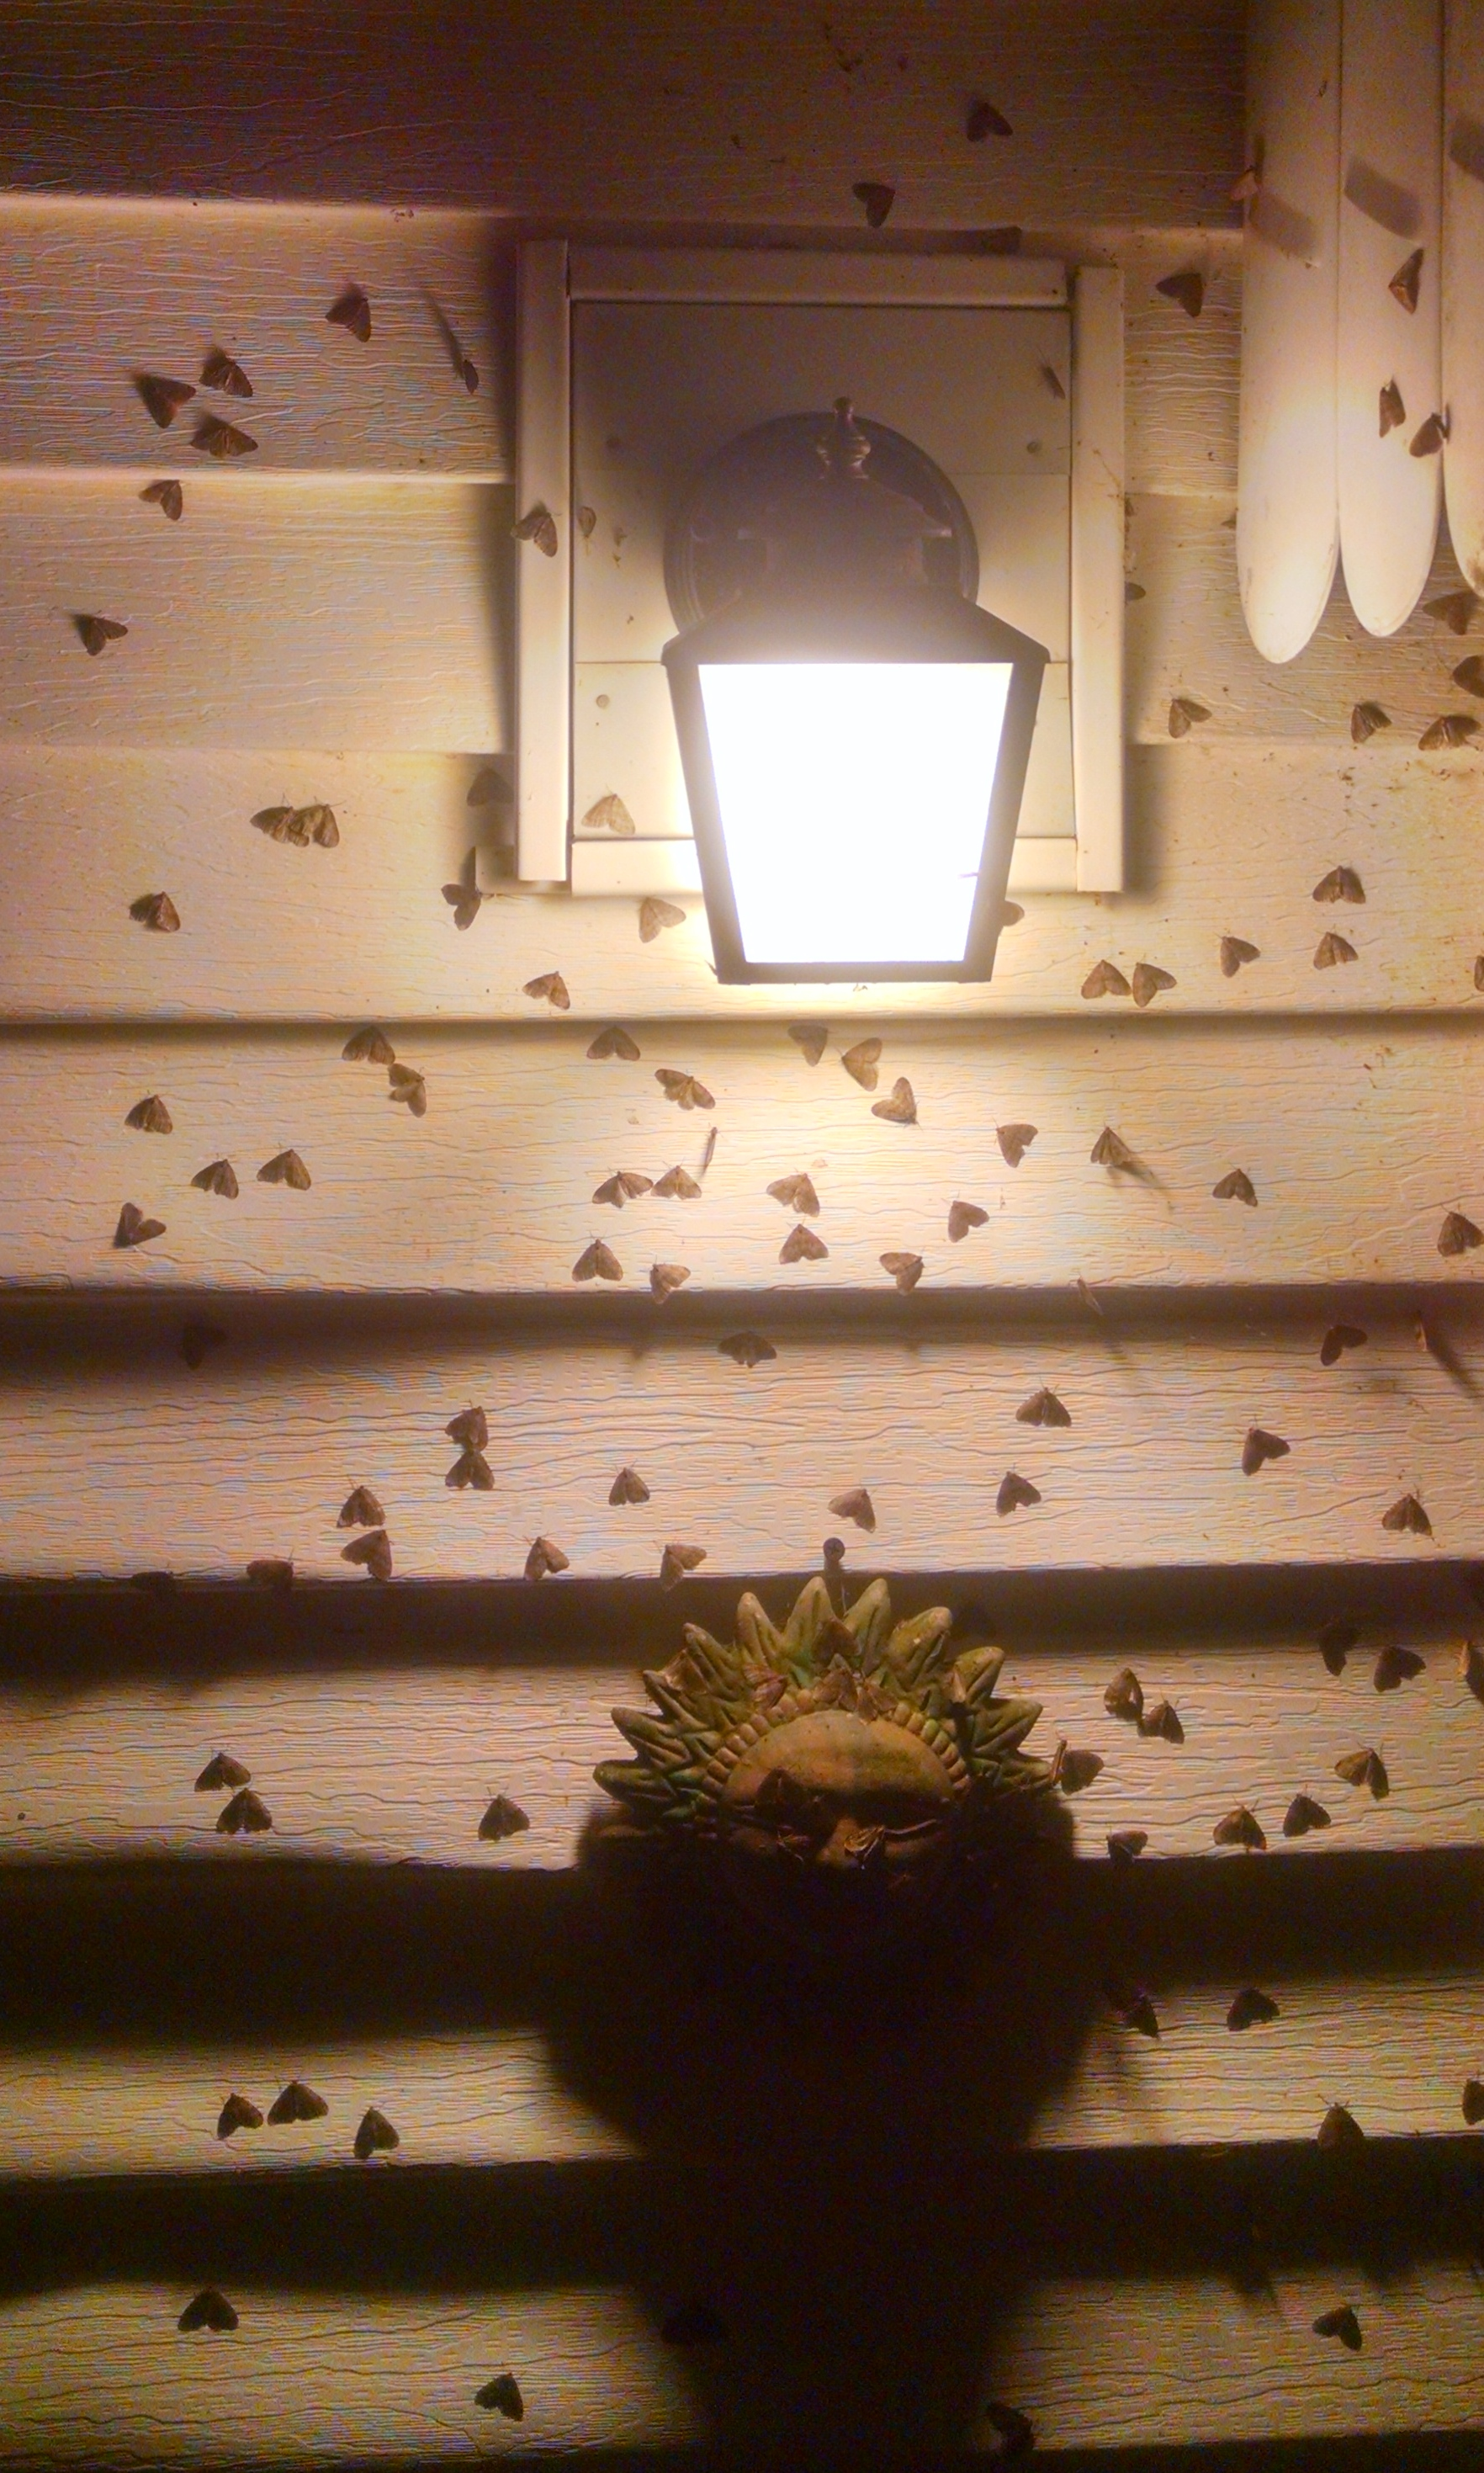 Adult male moths are strongly attracted to light and often seen flying around lamps.  (image: K.E. Bernard)